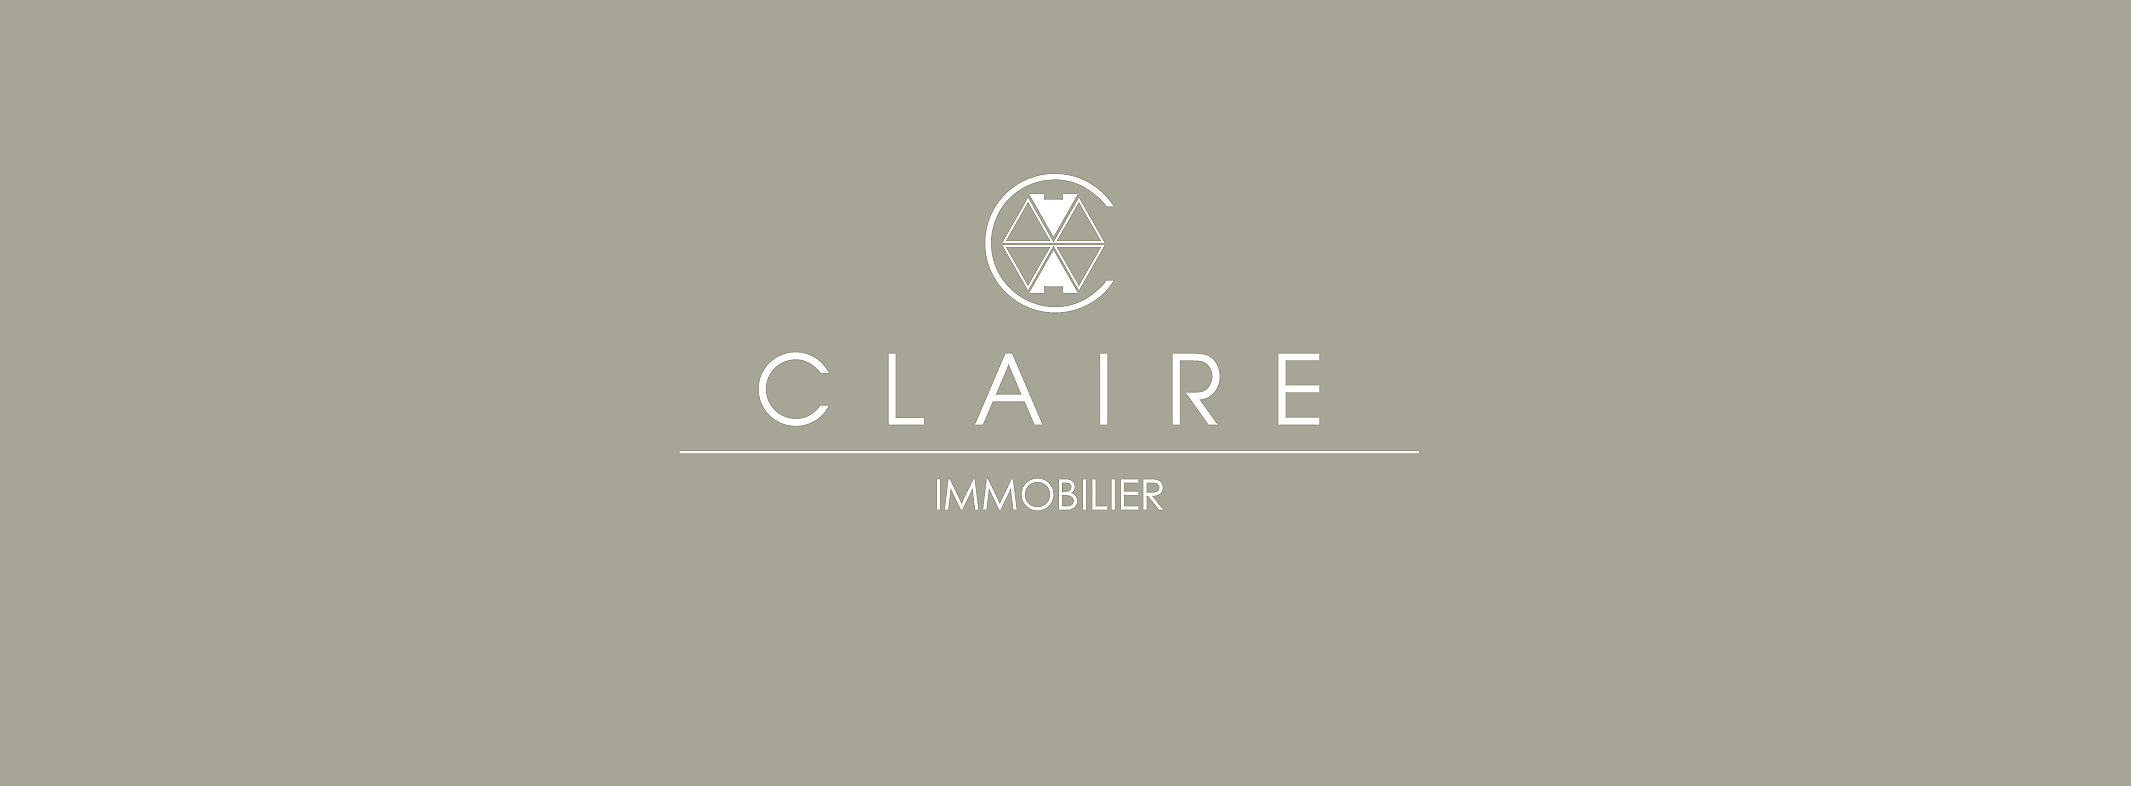 CLAIRE C'IMMOBILIER